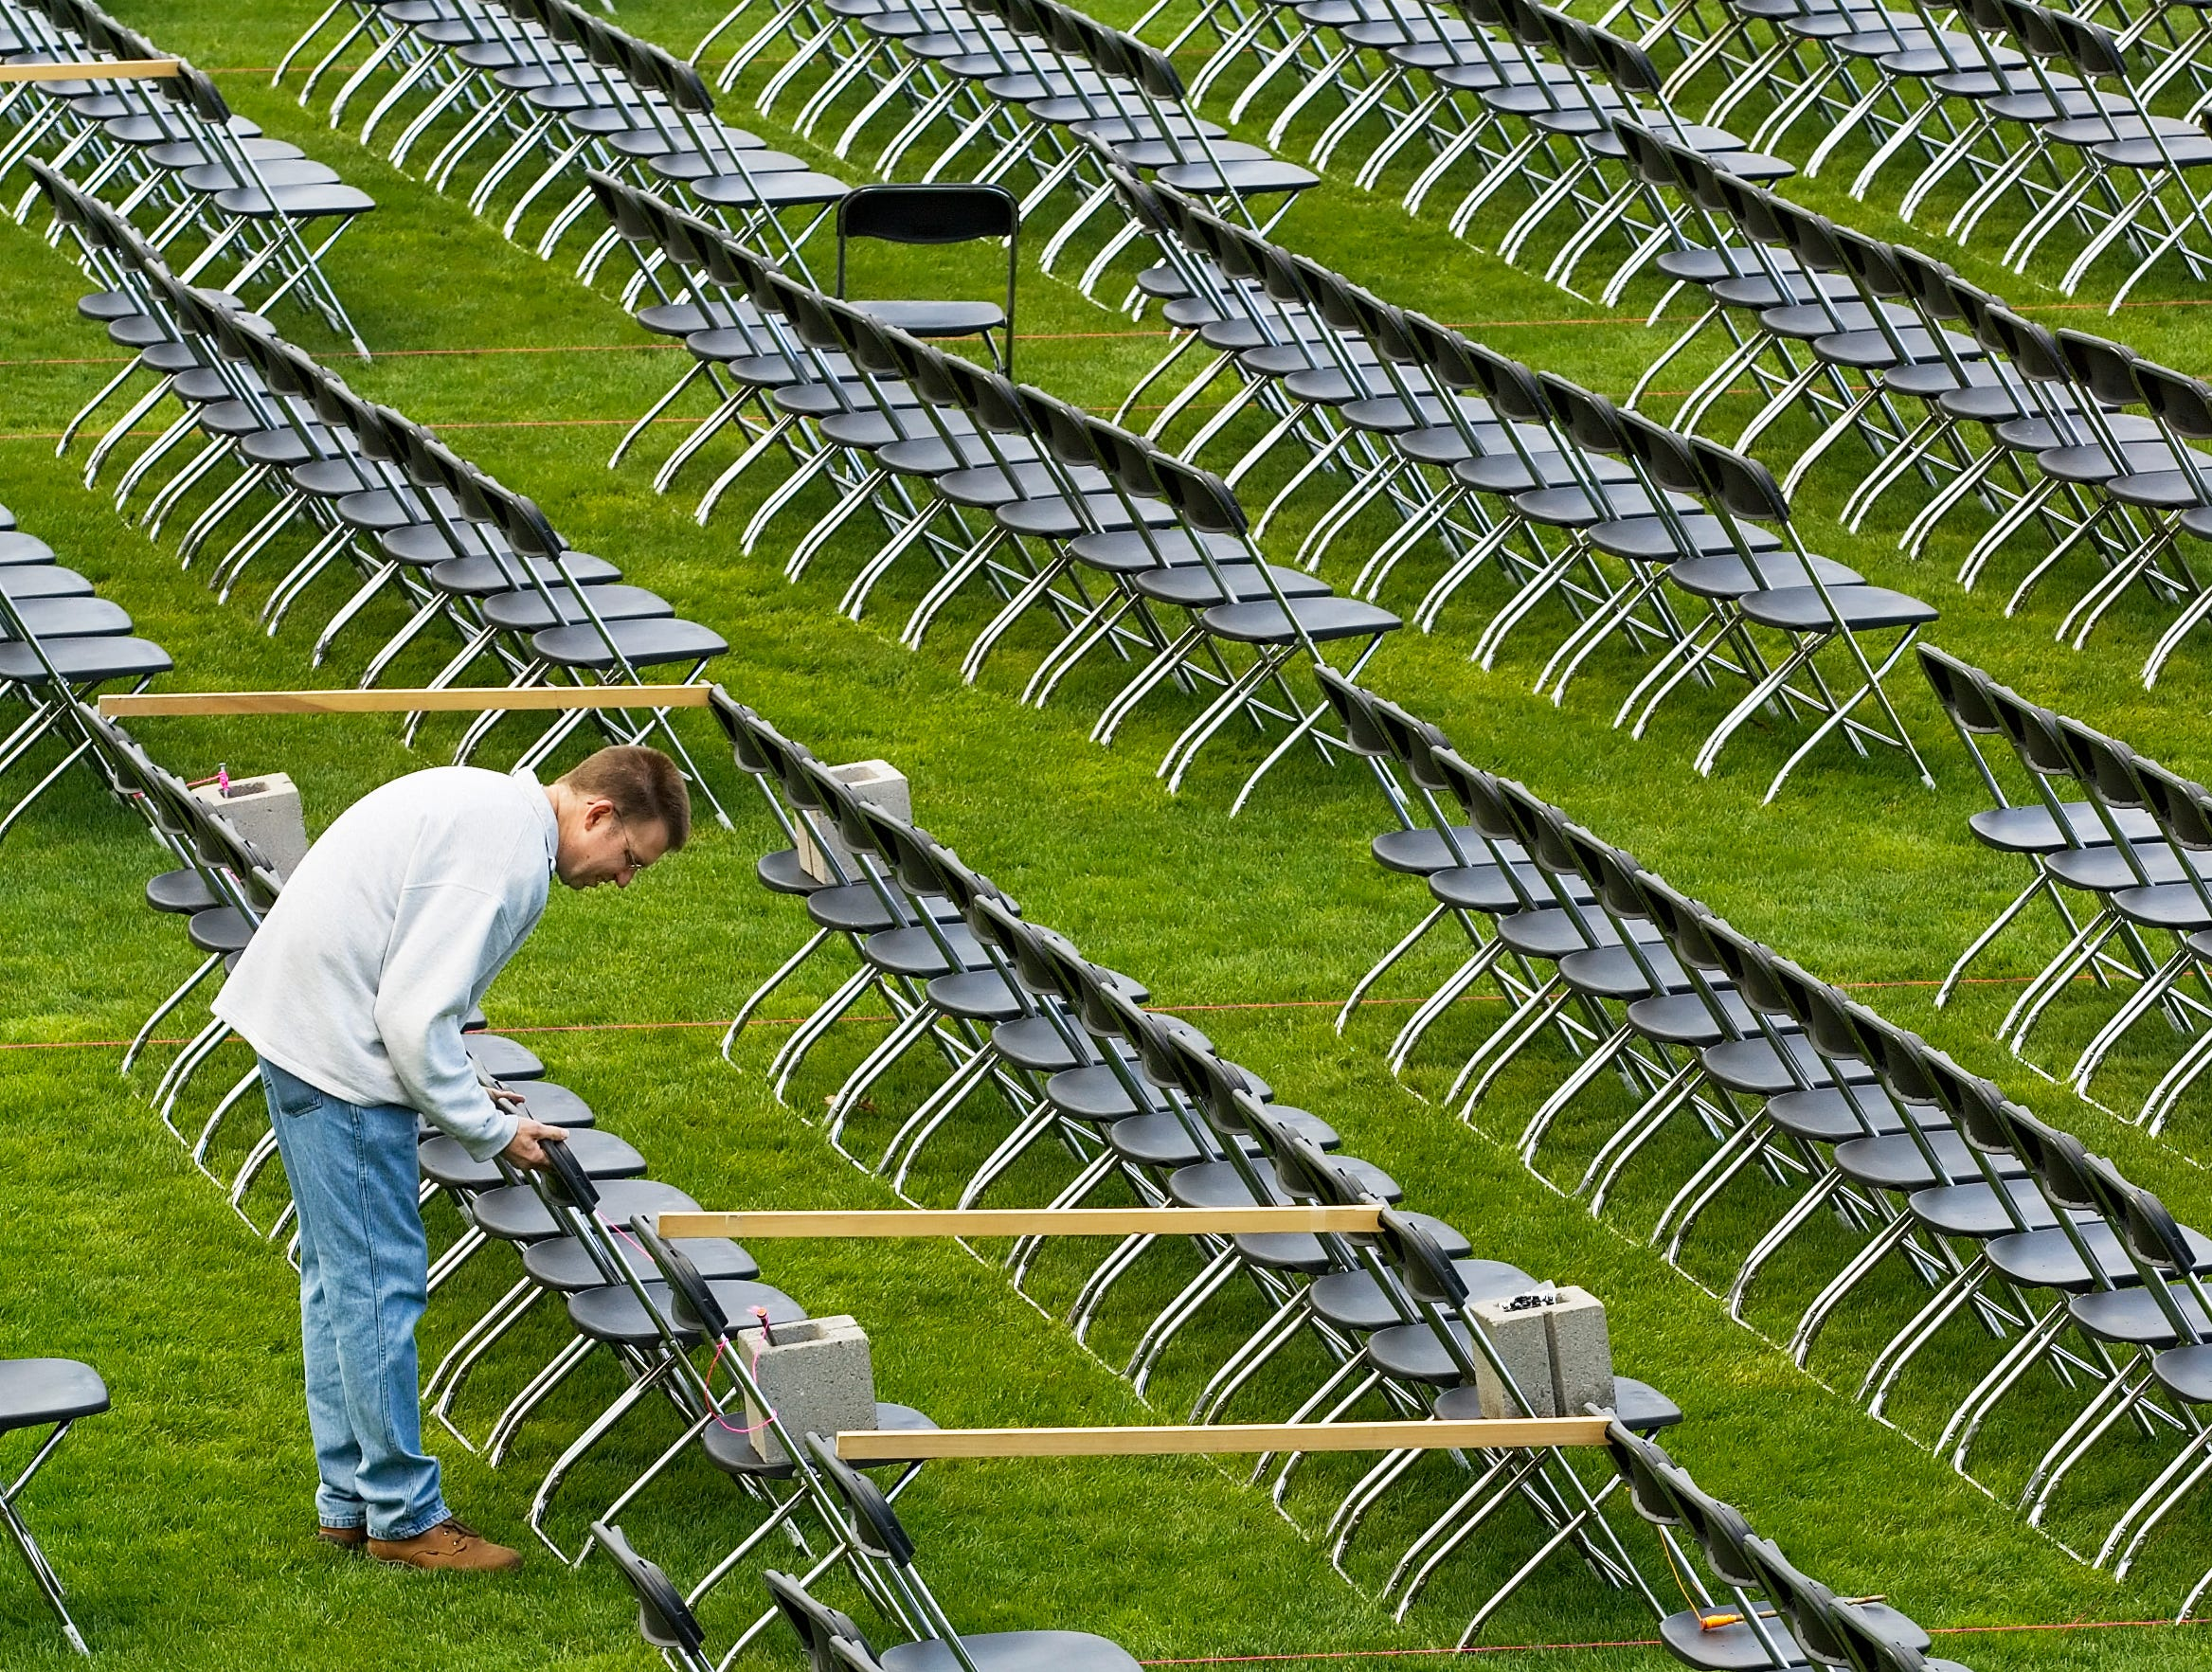 2007: Patrick Kelley and Ithaca College facilities attendant aligns the chairs on the field at Butterfield Stadium in preparation for graduation ceremonies to be held Sunday. The crew has been working since Tuesday to get the chairs out. Counting the bleachers there will be seating for 6942 people.